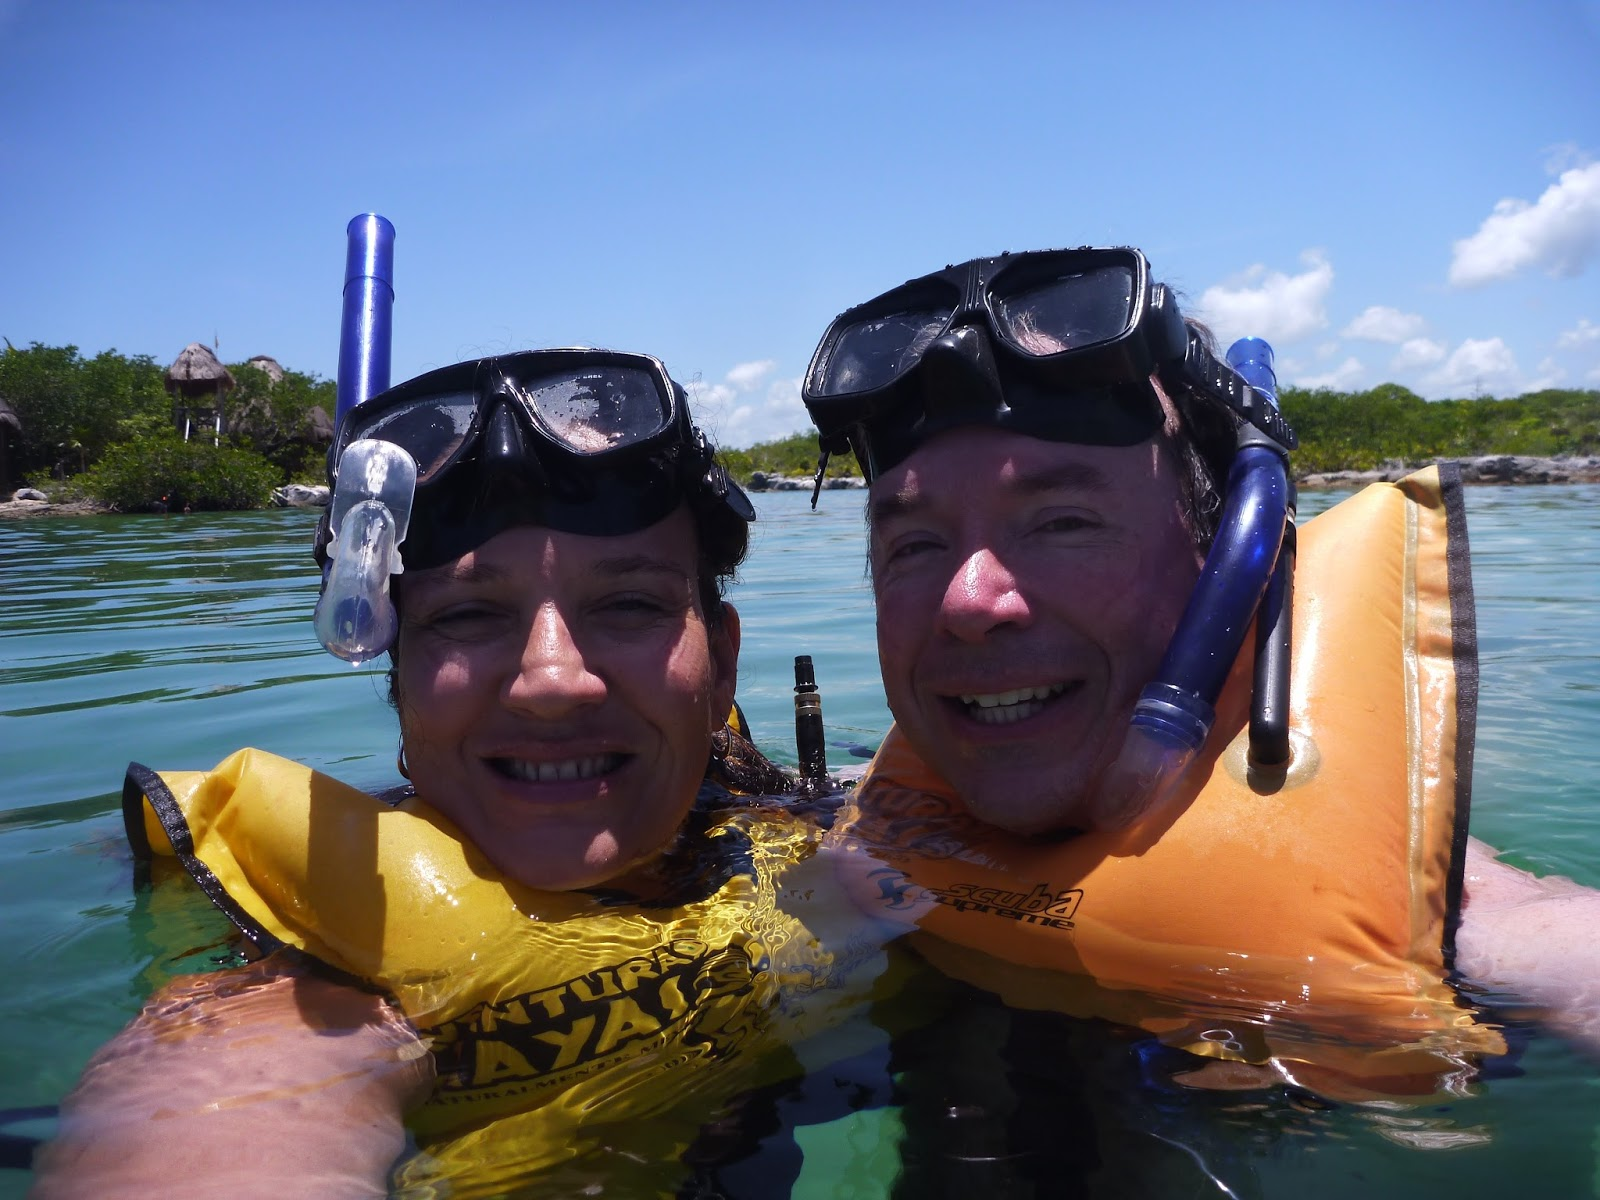 For The Second Half Of Tour They Drove Us To Small Beach Community Akumal Snorkel